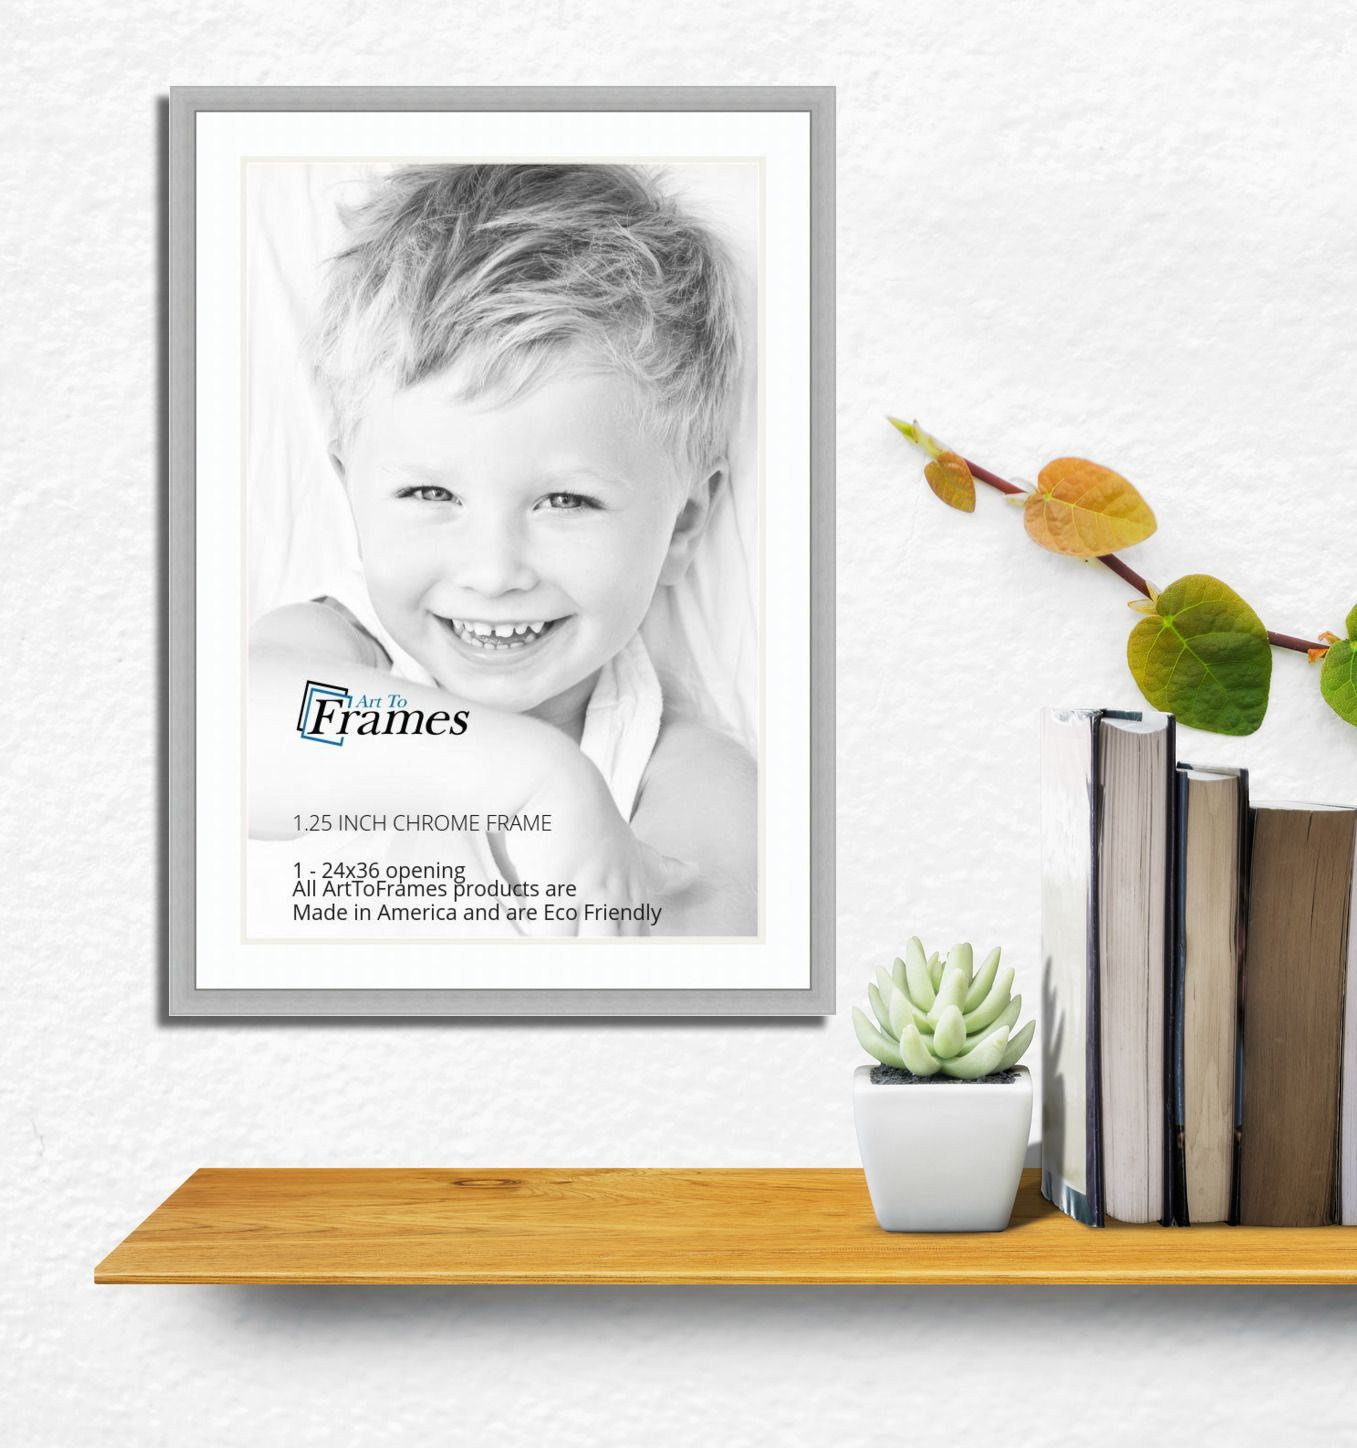 28x40collage Picture Frames With Mats Frame Mat And Glass Options Fully Customizable Preserve All Your Life S Important Moments With Custom Frames Online With Art To Frame S Great Collection Of Online Frames Call